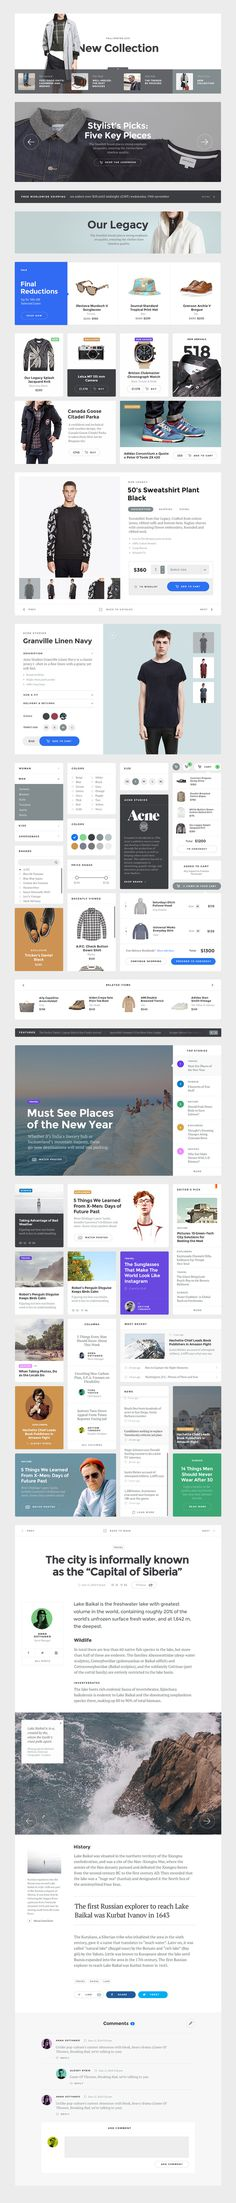 Baikal_preview_components #design #web #kit #ui